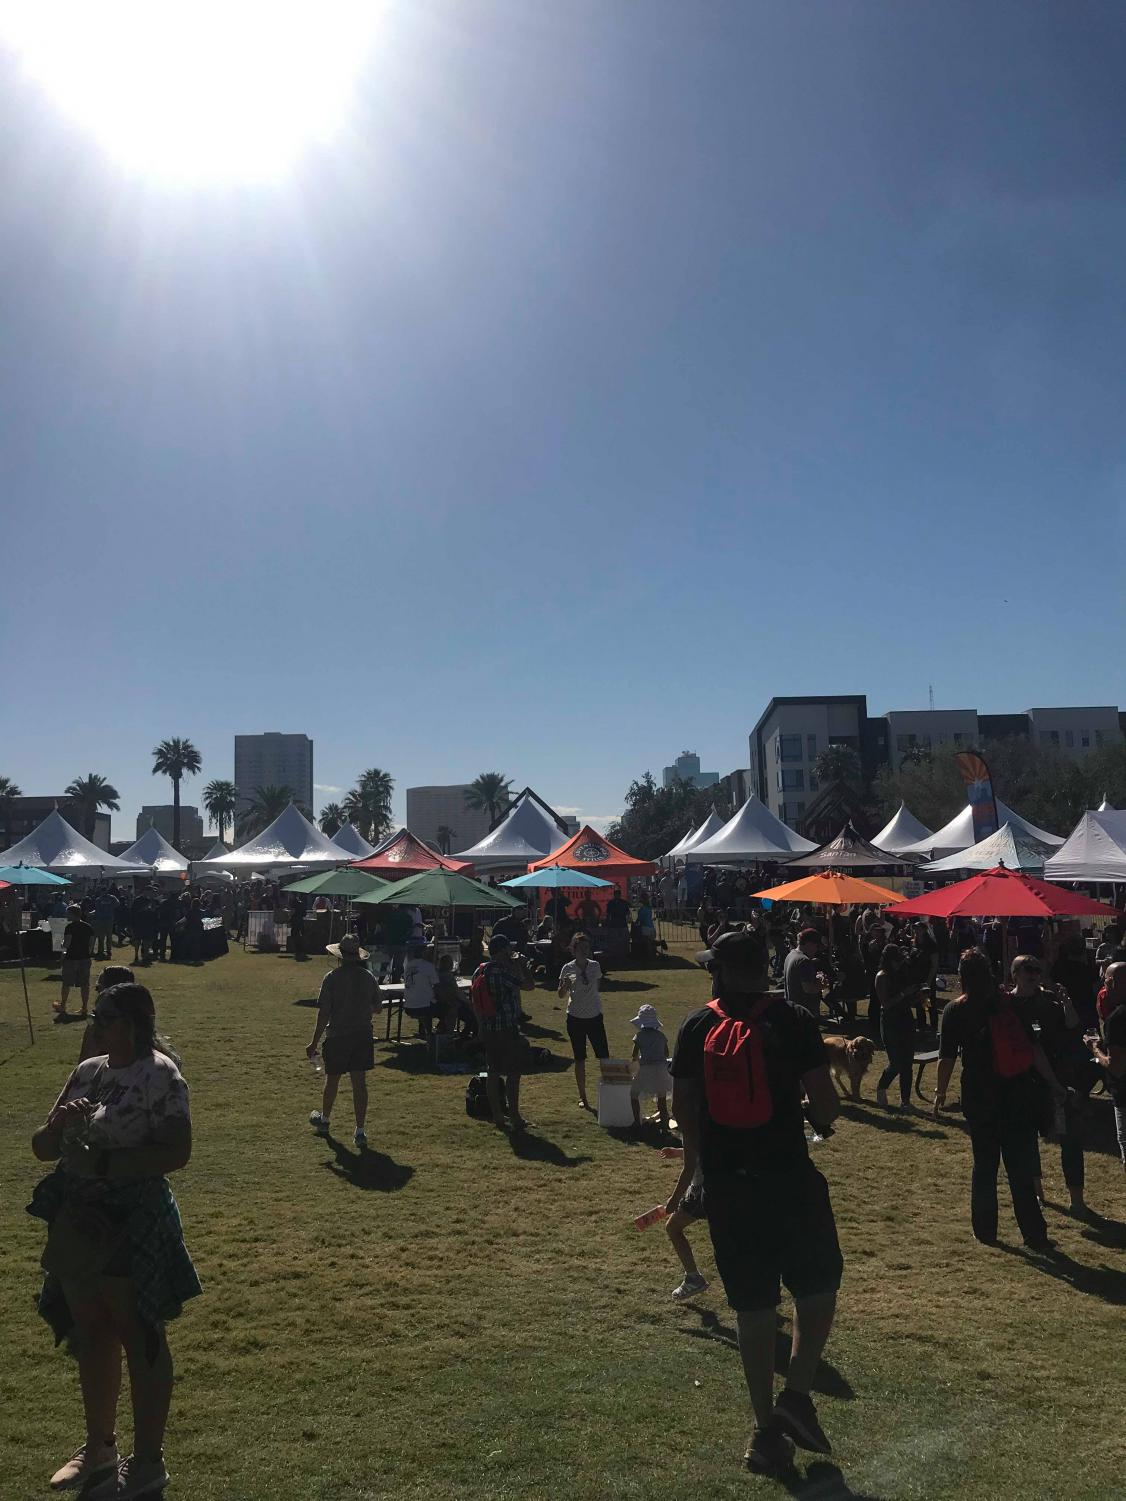 Arizona Fall Festival 2019